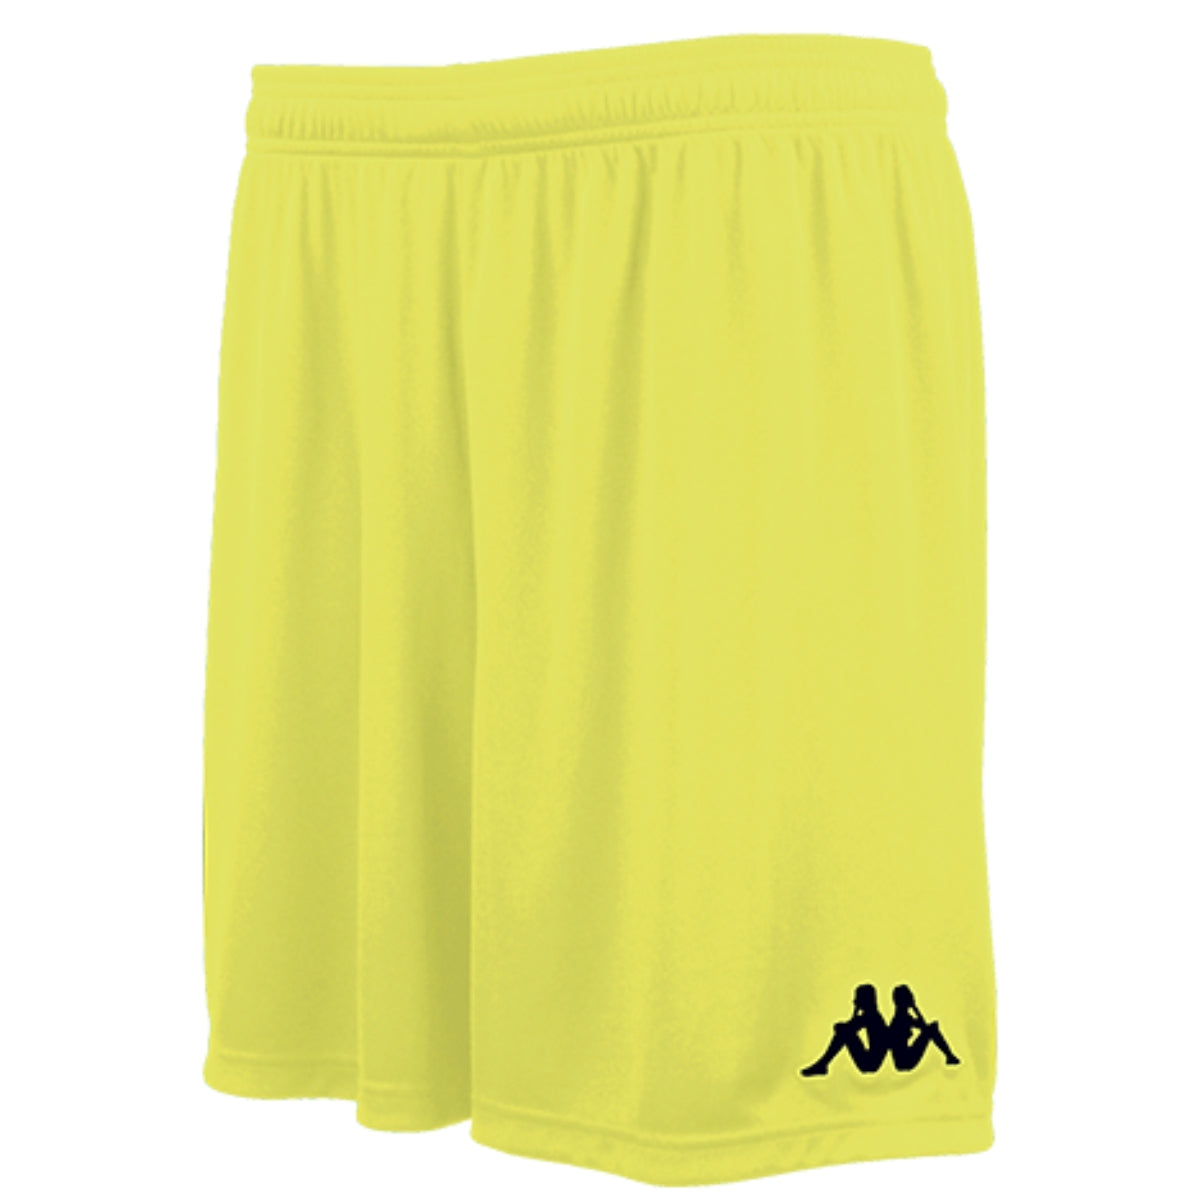 Kappa Vareso match short in yellow fluo with black embroidered Omini on the left leg.